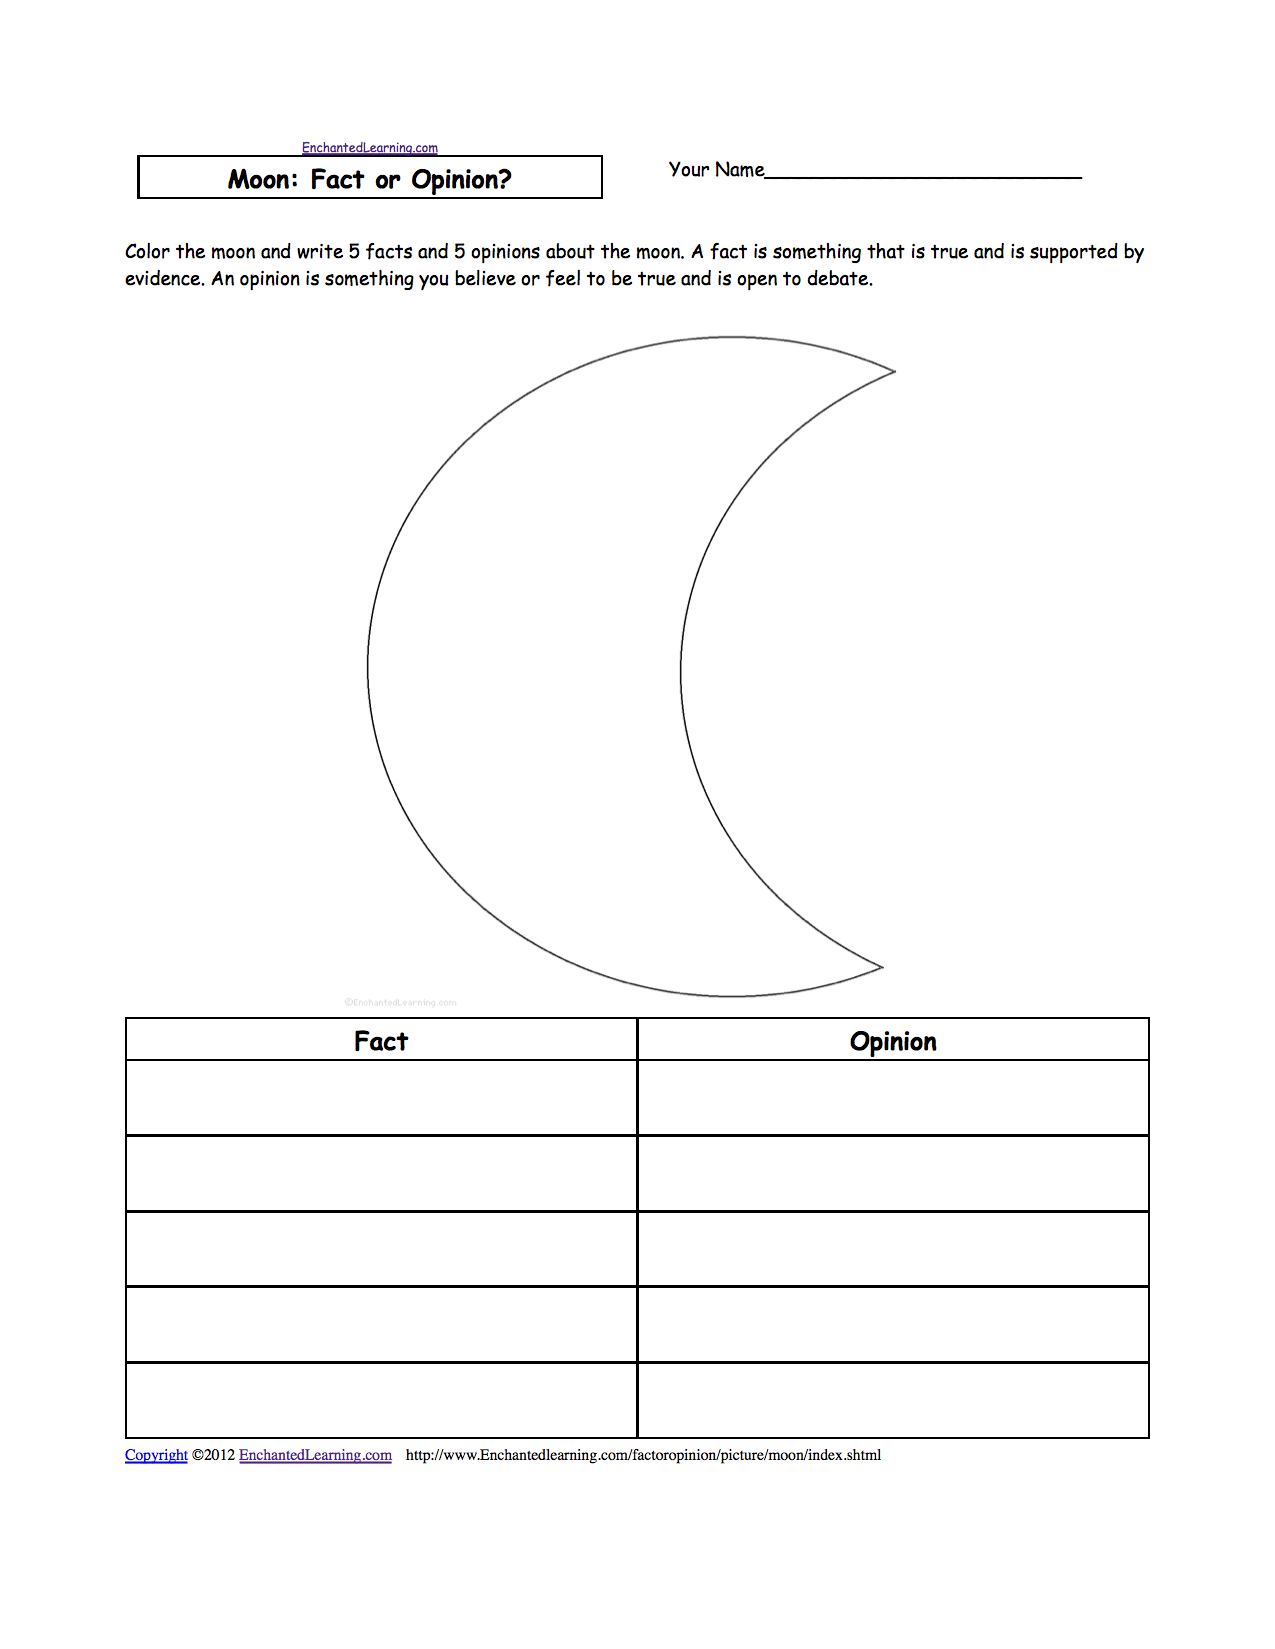 Colouring sheets of the lunar eclipse - Moon Fact Or Opinion